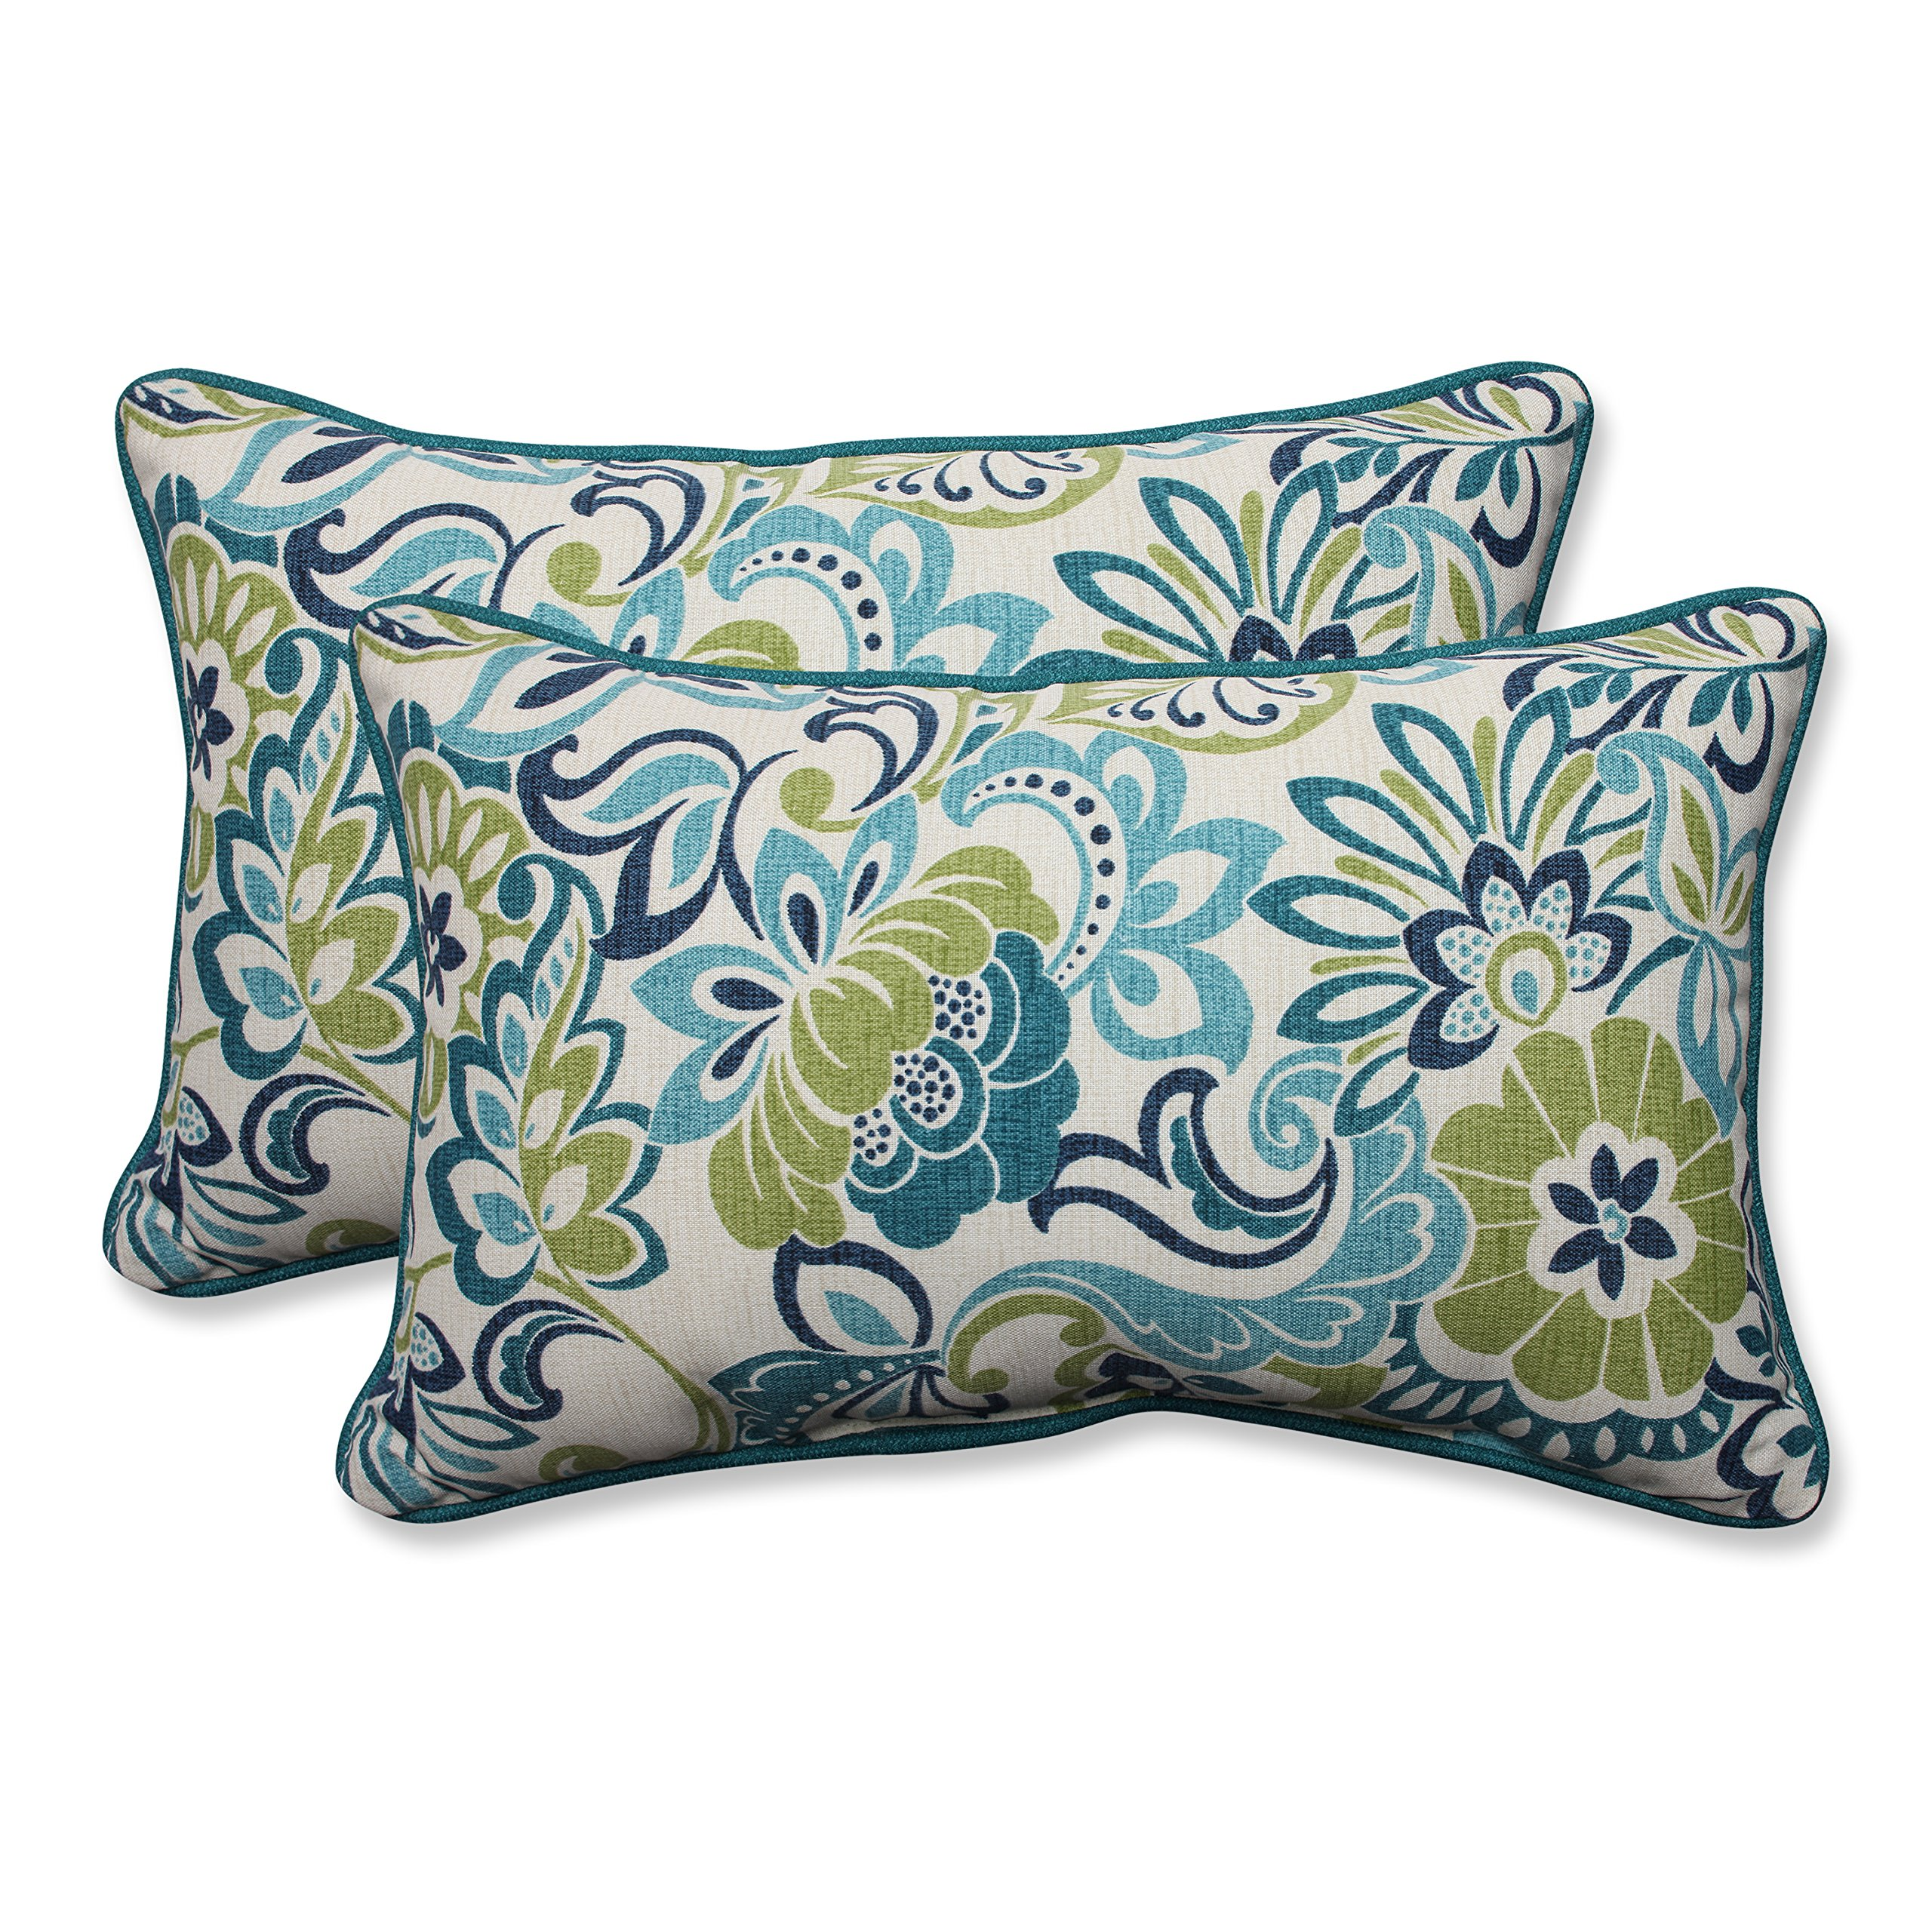 Pillow Perfect Outdoor/Indoor Zoe Mallard Rectangular Throw Pillow (Set of 2)